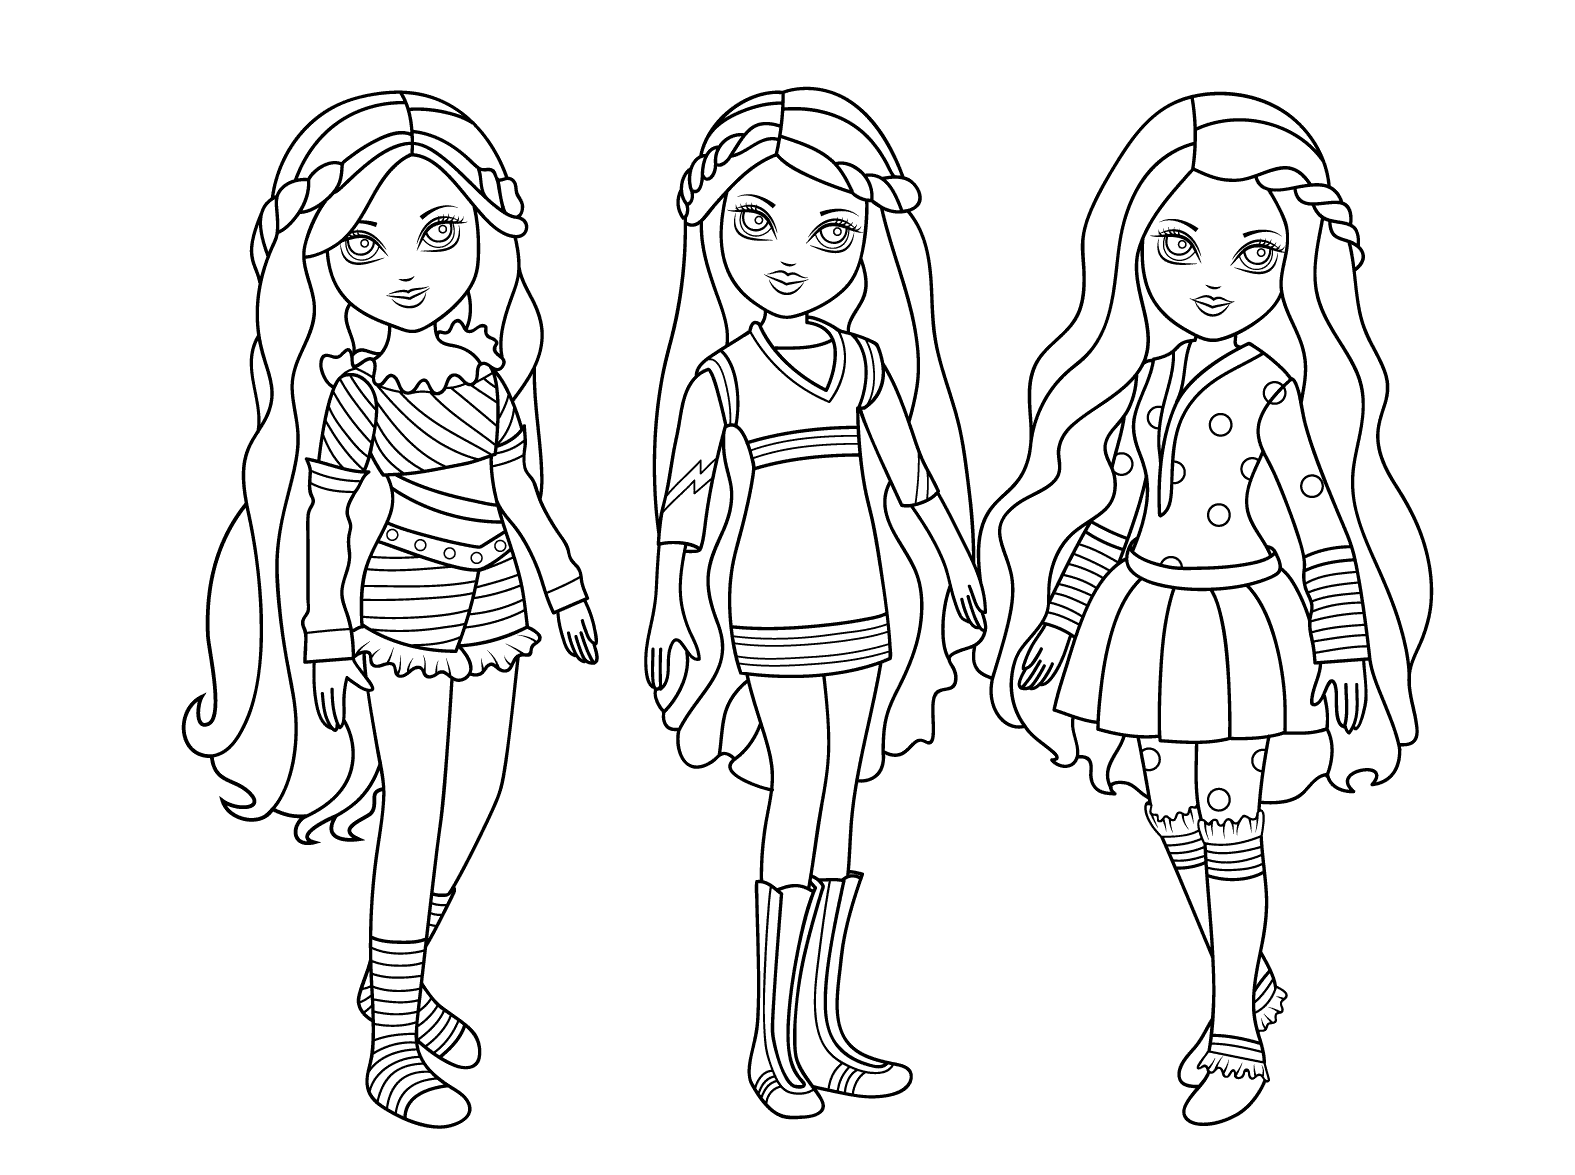 pictures of american girl dolls to color american girl doll coloring pages free printable american american to pictures of color dolls girl